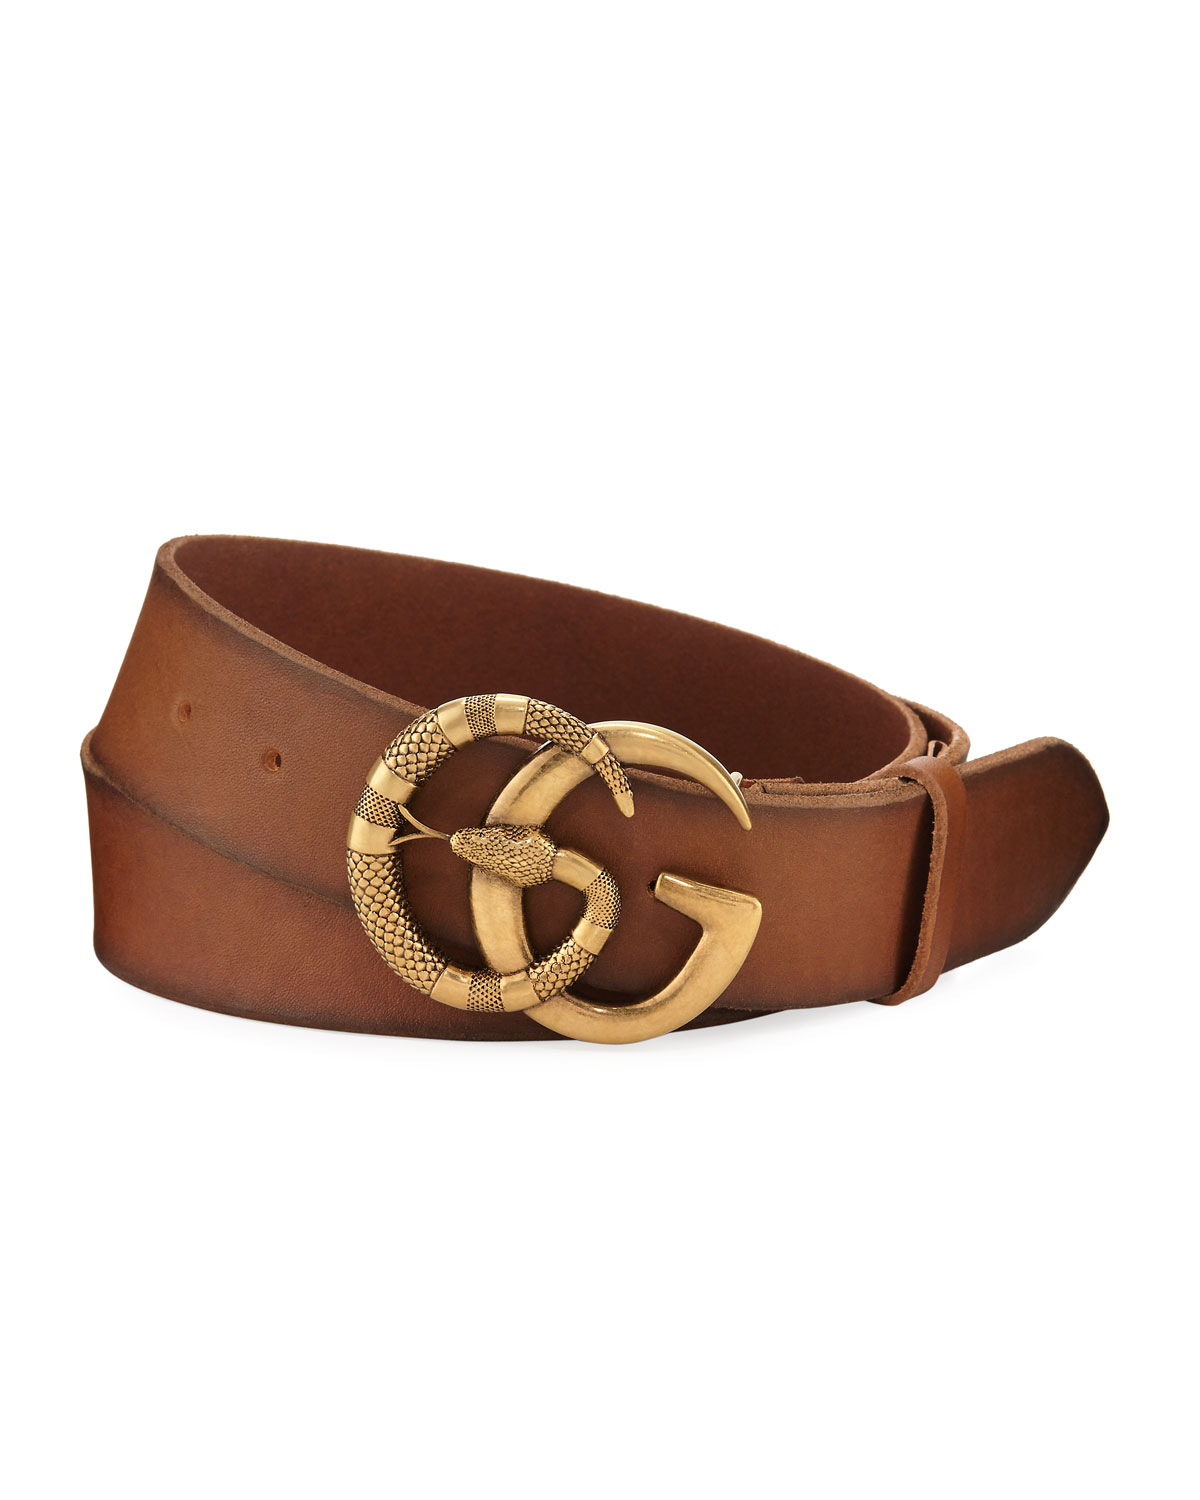 ab8595cf349 Gucci Cuoio Toscano Snake GG Belt